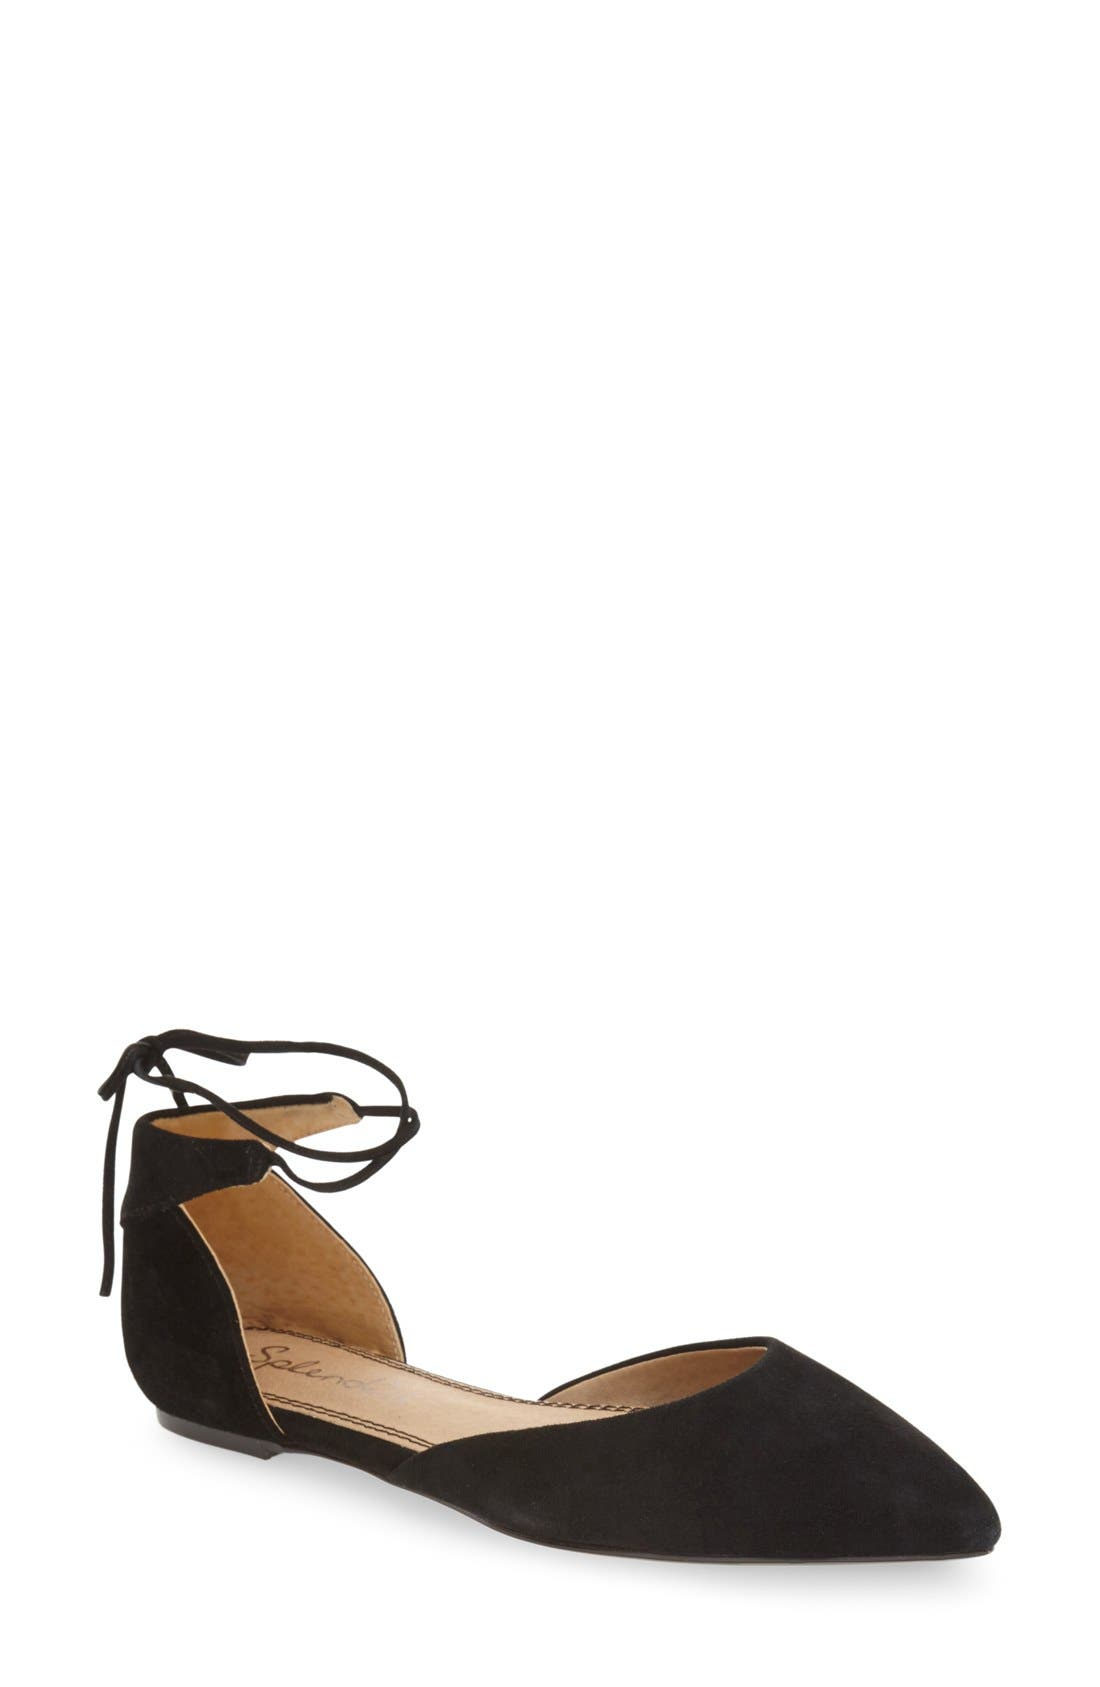 'Annabelle' Lace-Up d'Orsay Flat,                         Main,                         color, 001